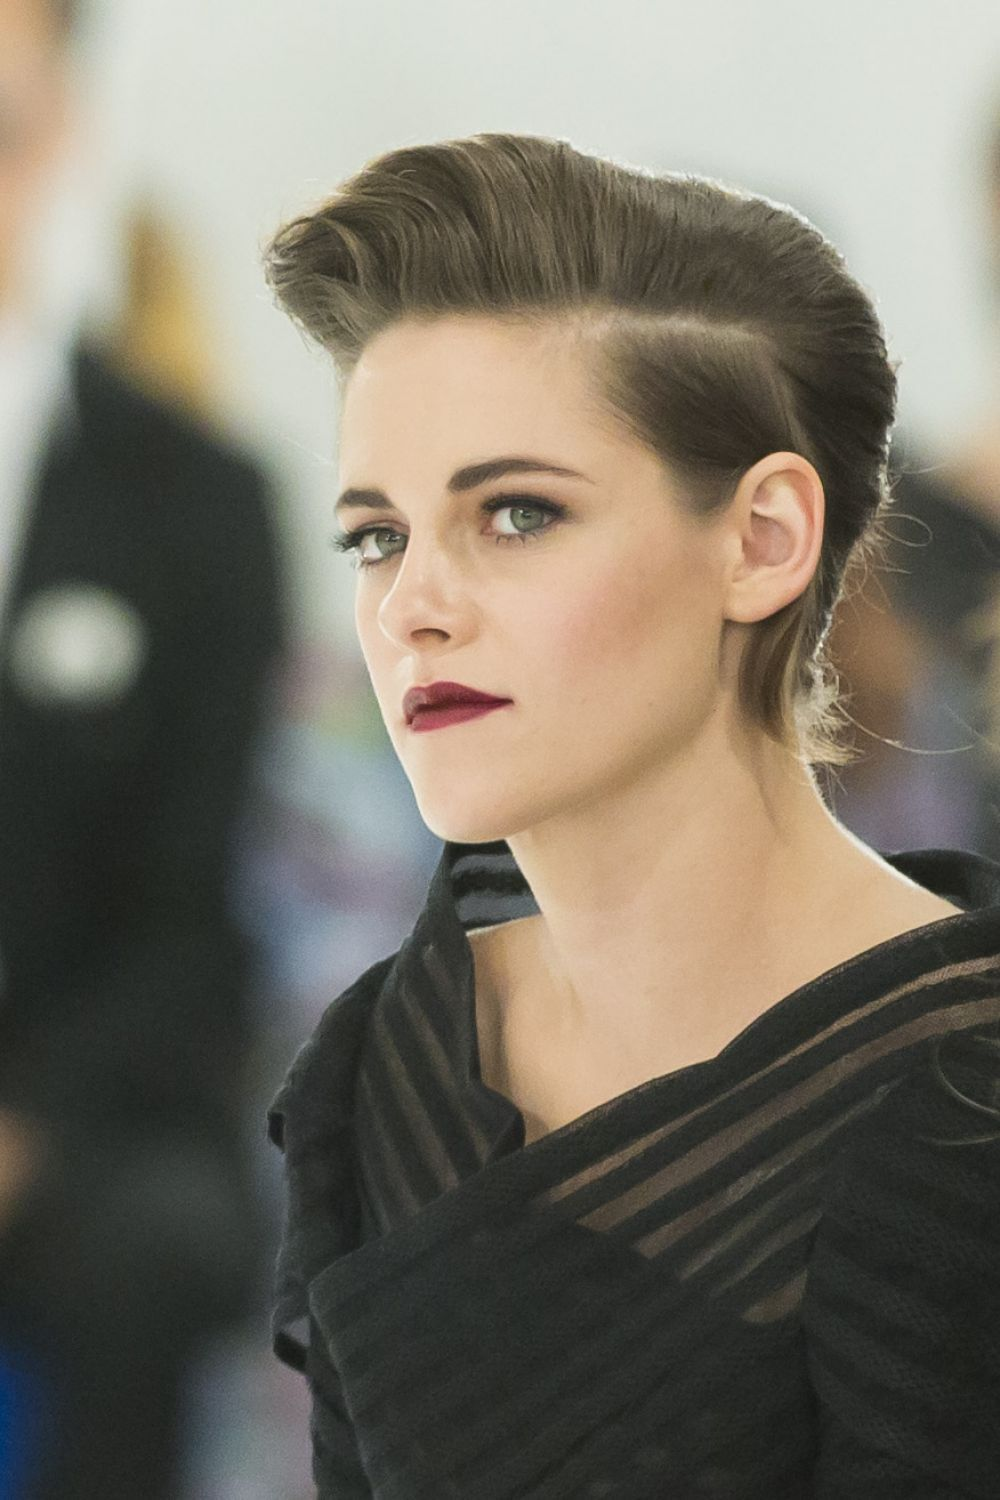 kristen stewart korea 2015 | Kristen Stewart attends the Chanel Cruise 2015/2016 Fashion Show In ...